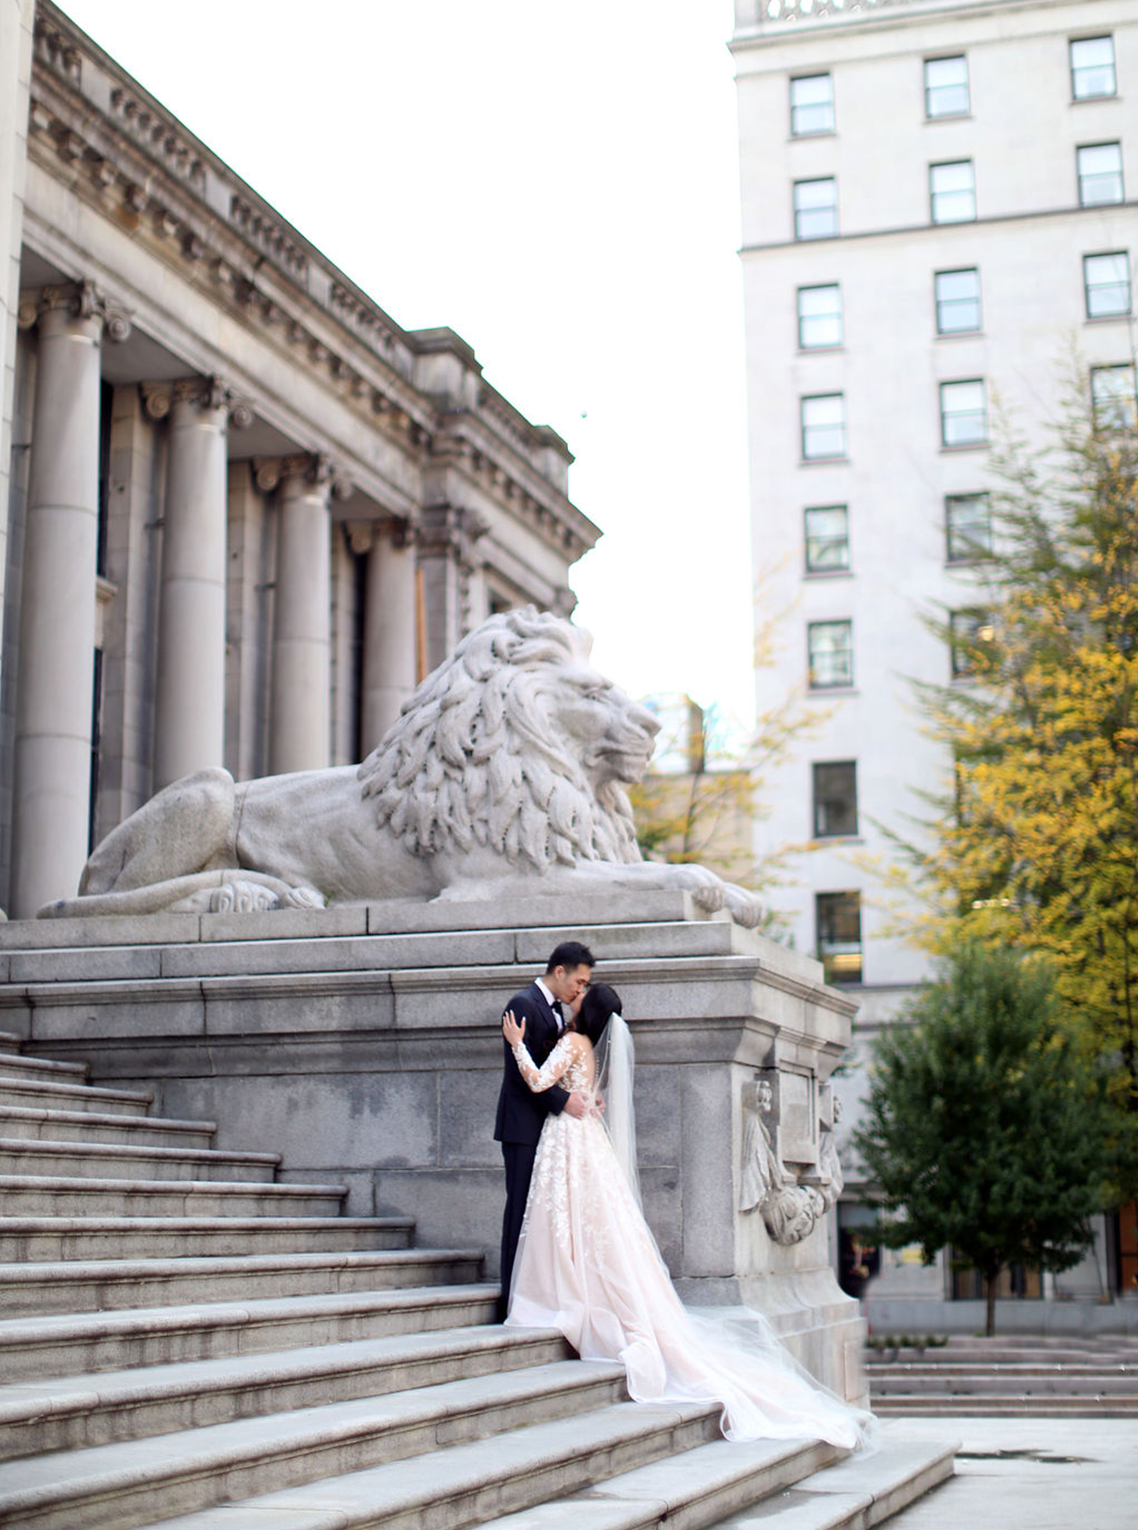 Chic City Wedding With Chinese Traditions in Vancouver – Natalie Hung Photography 8